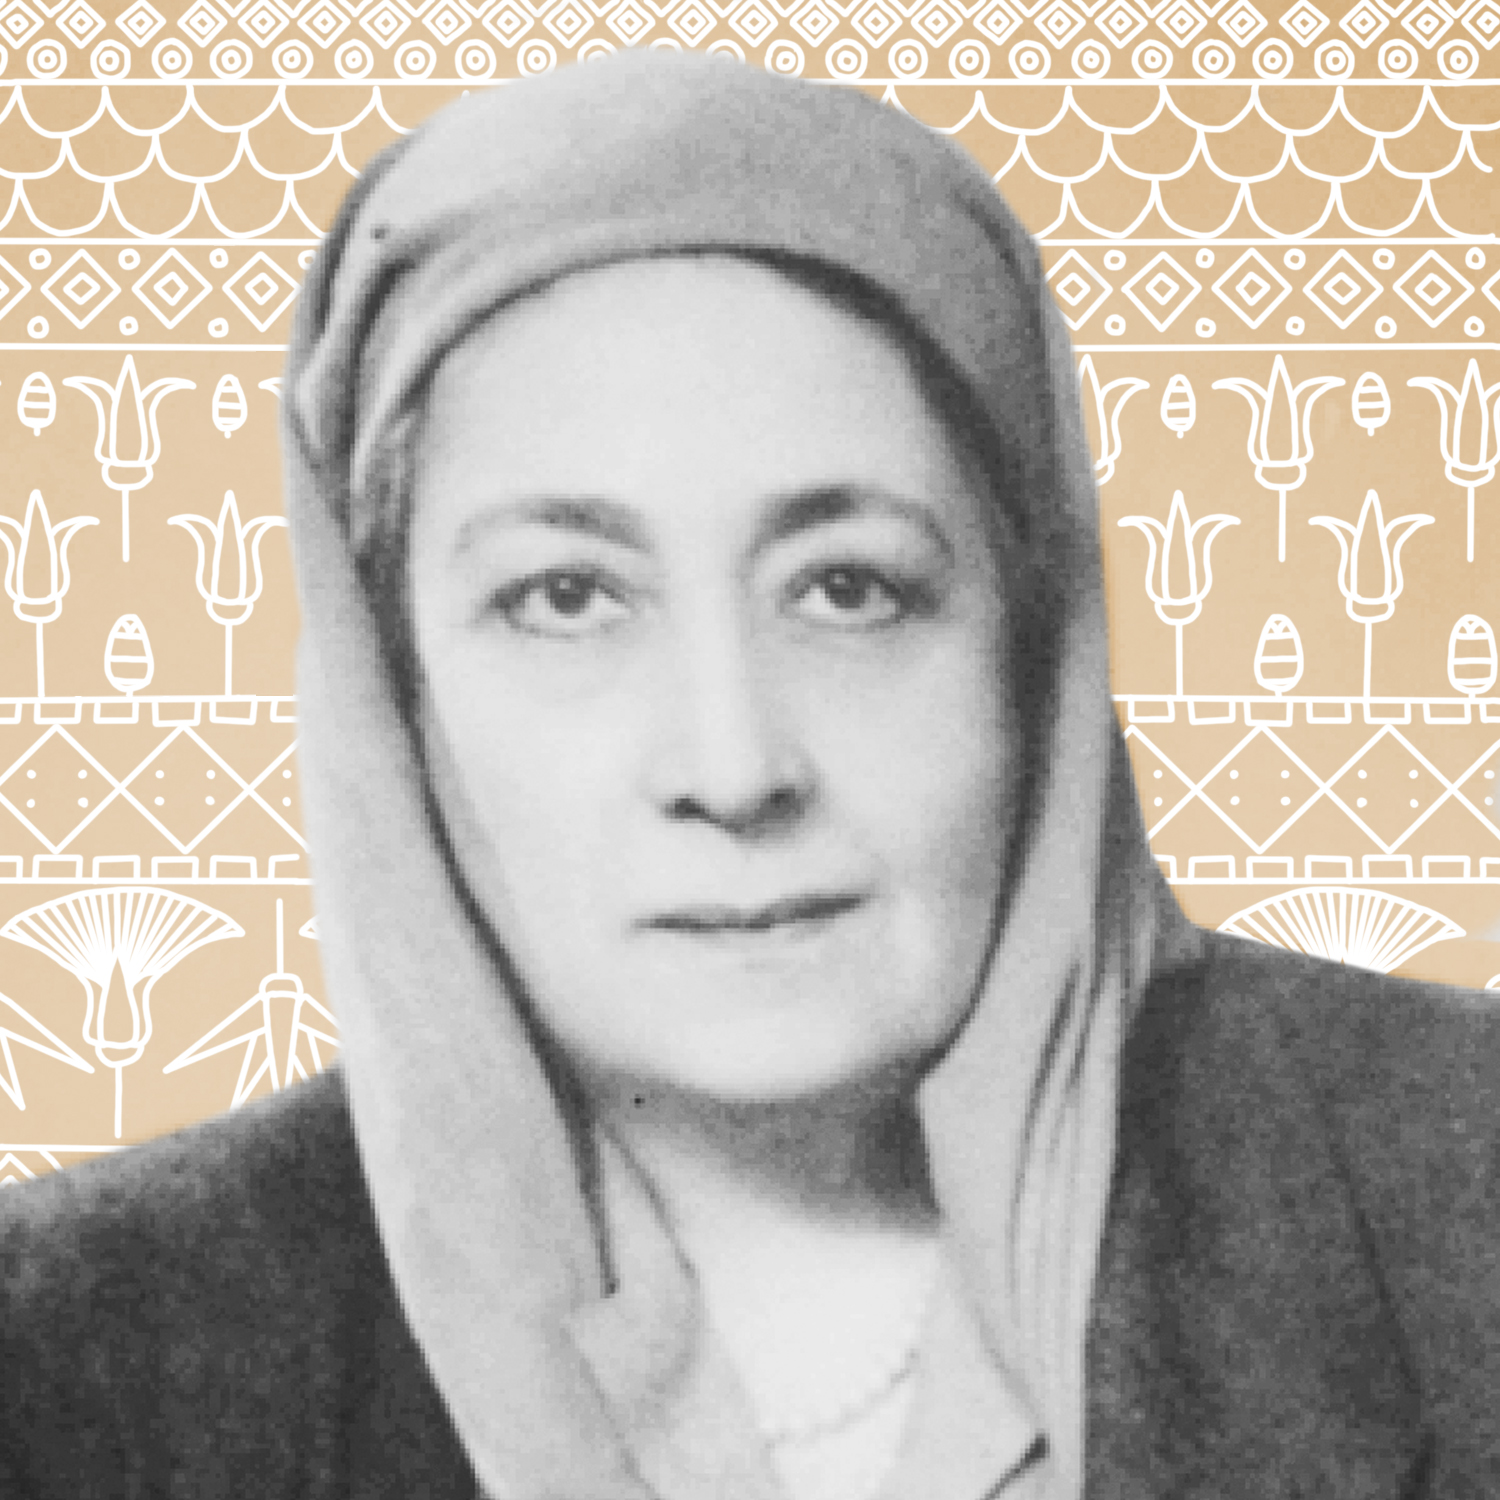 Huda Sha'arawi   In 1908, she founded Egypt's first female-run philanthropic society, which offered services for impoverished women and children. As more education opportunities became available for Egyptian women, Huda planned lectures to educate women, and eventually organized the largest women's anti-British protest.She continues to have a lasting influence on women not only in the Middle East but also around the world.